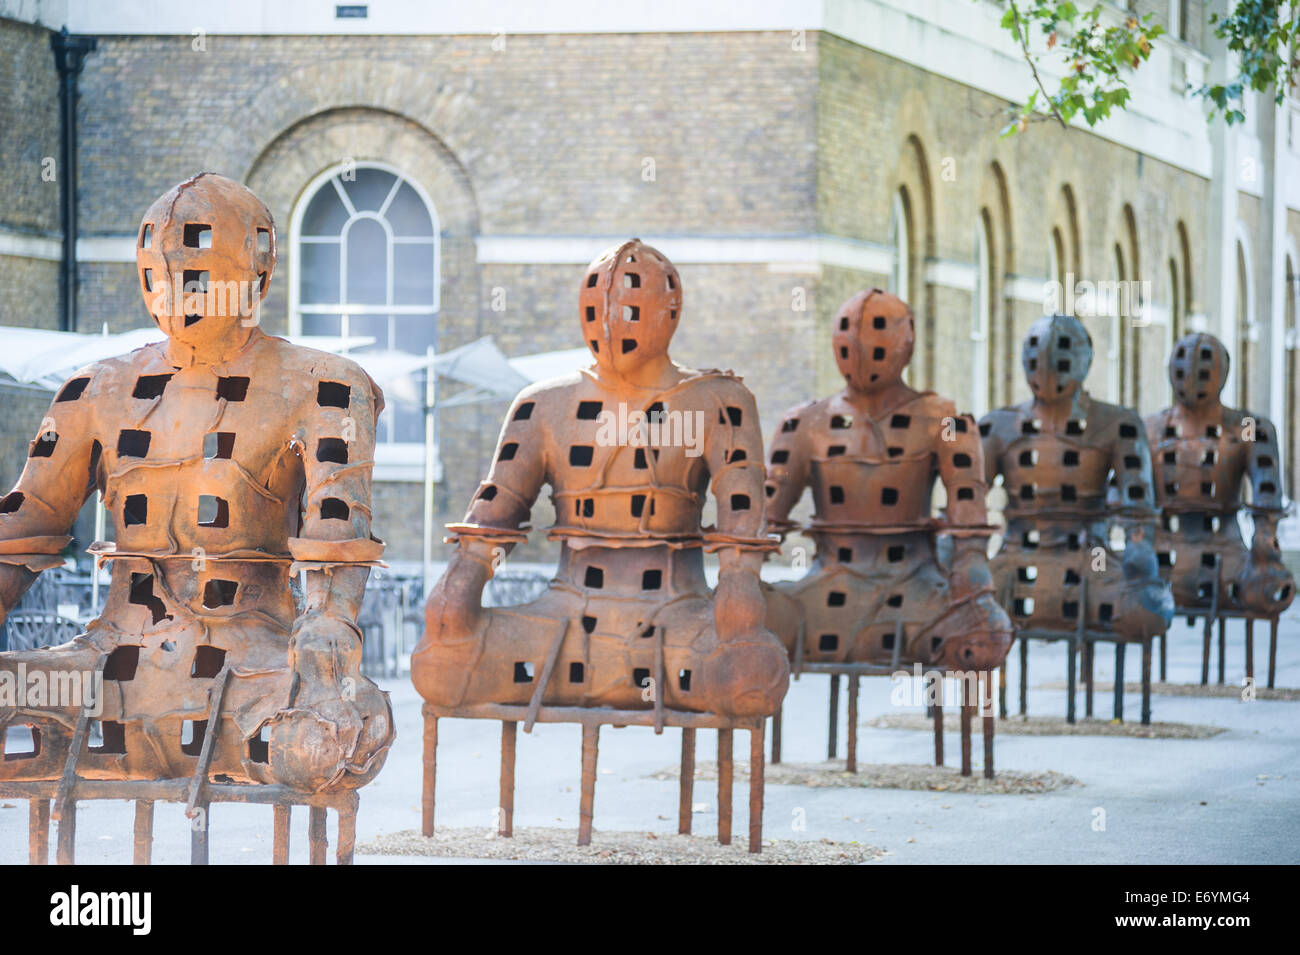 London, UK. 2nd Sept, 2014.  installation 'Guardians' by artist Xavier Mascaró. These rusted iron warriors, - Stock Image